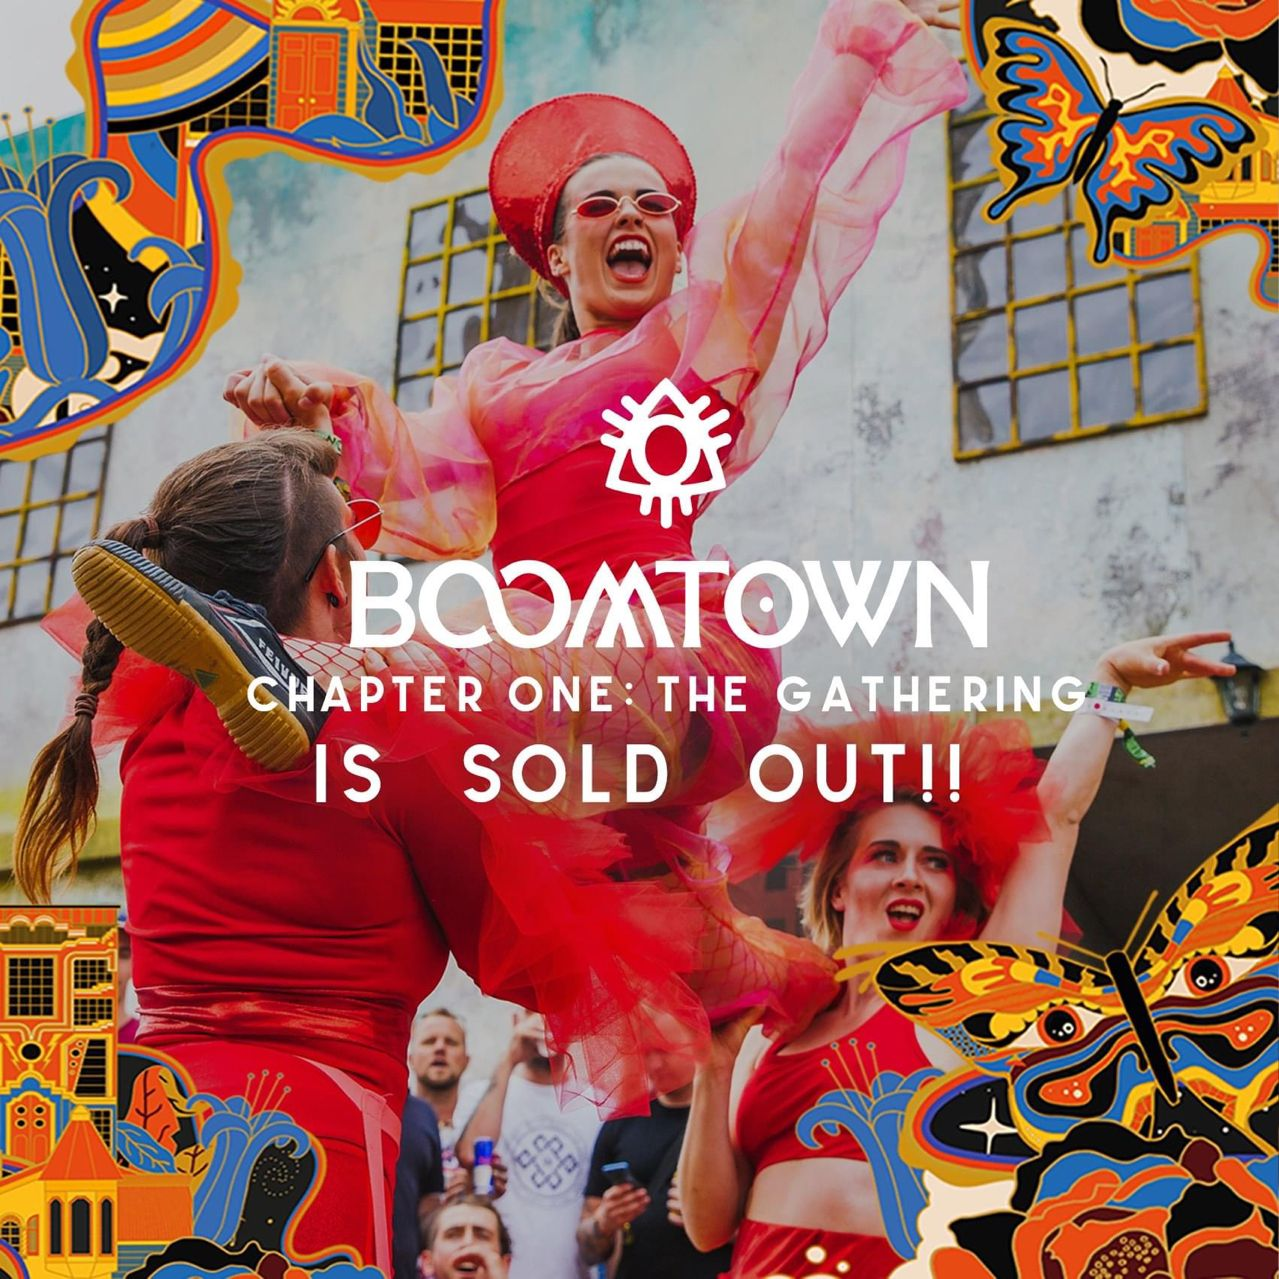 Boomtown 2021 sold out the week following the government's roadmap